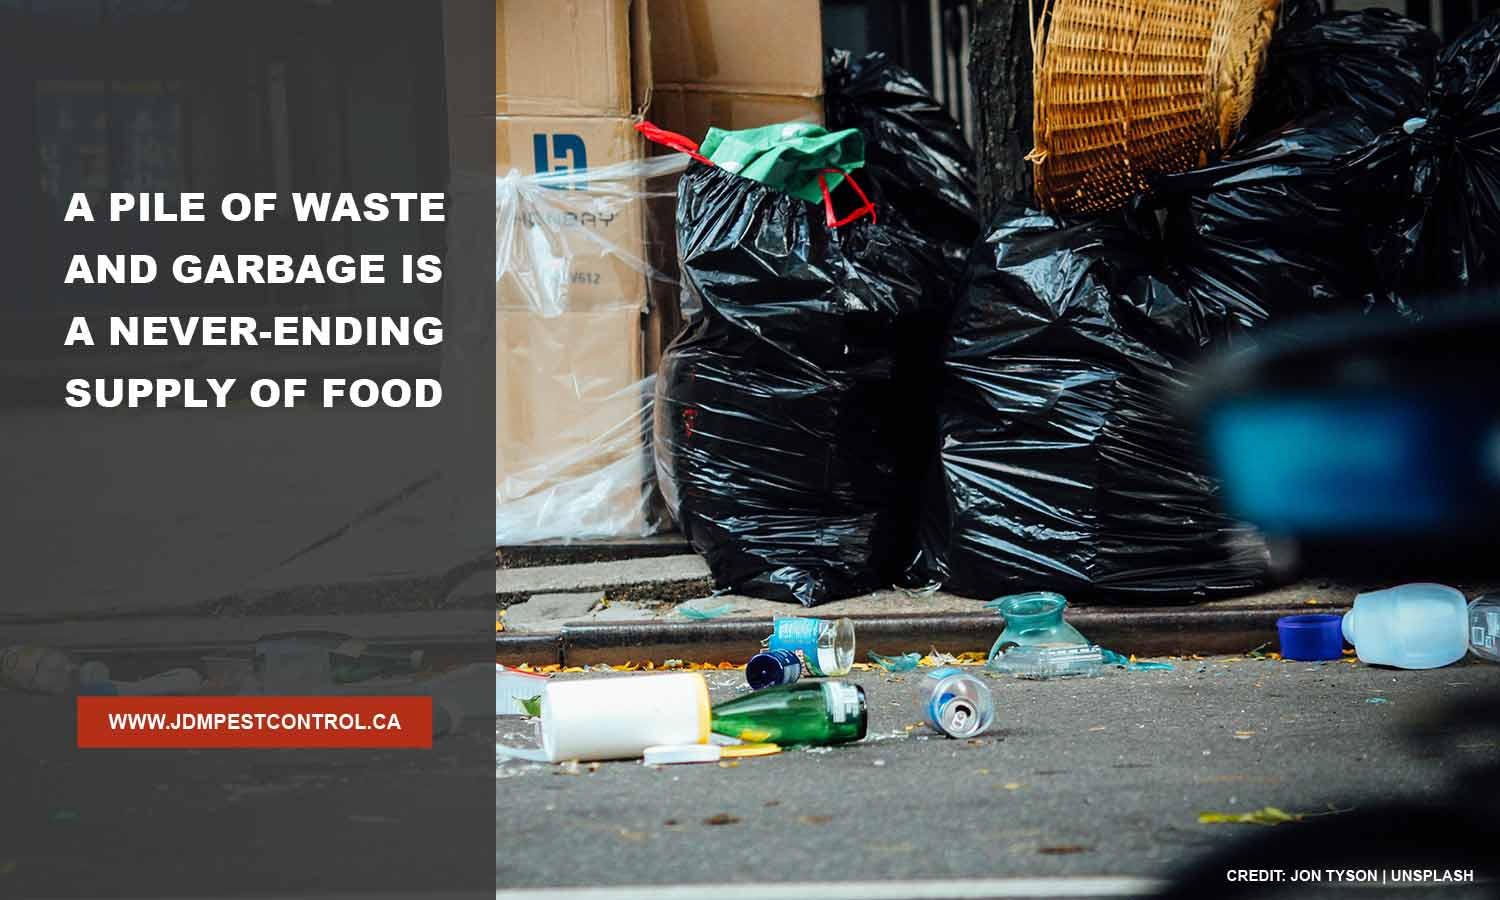 A pile of waste and garbage is a never-ending supply of food